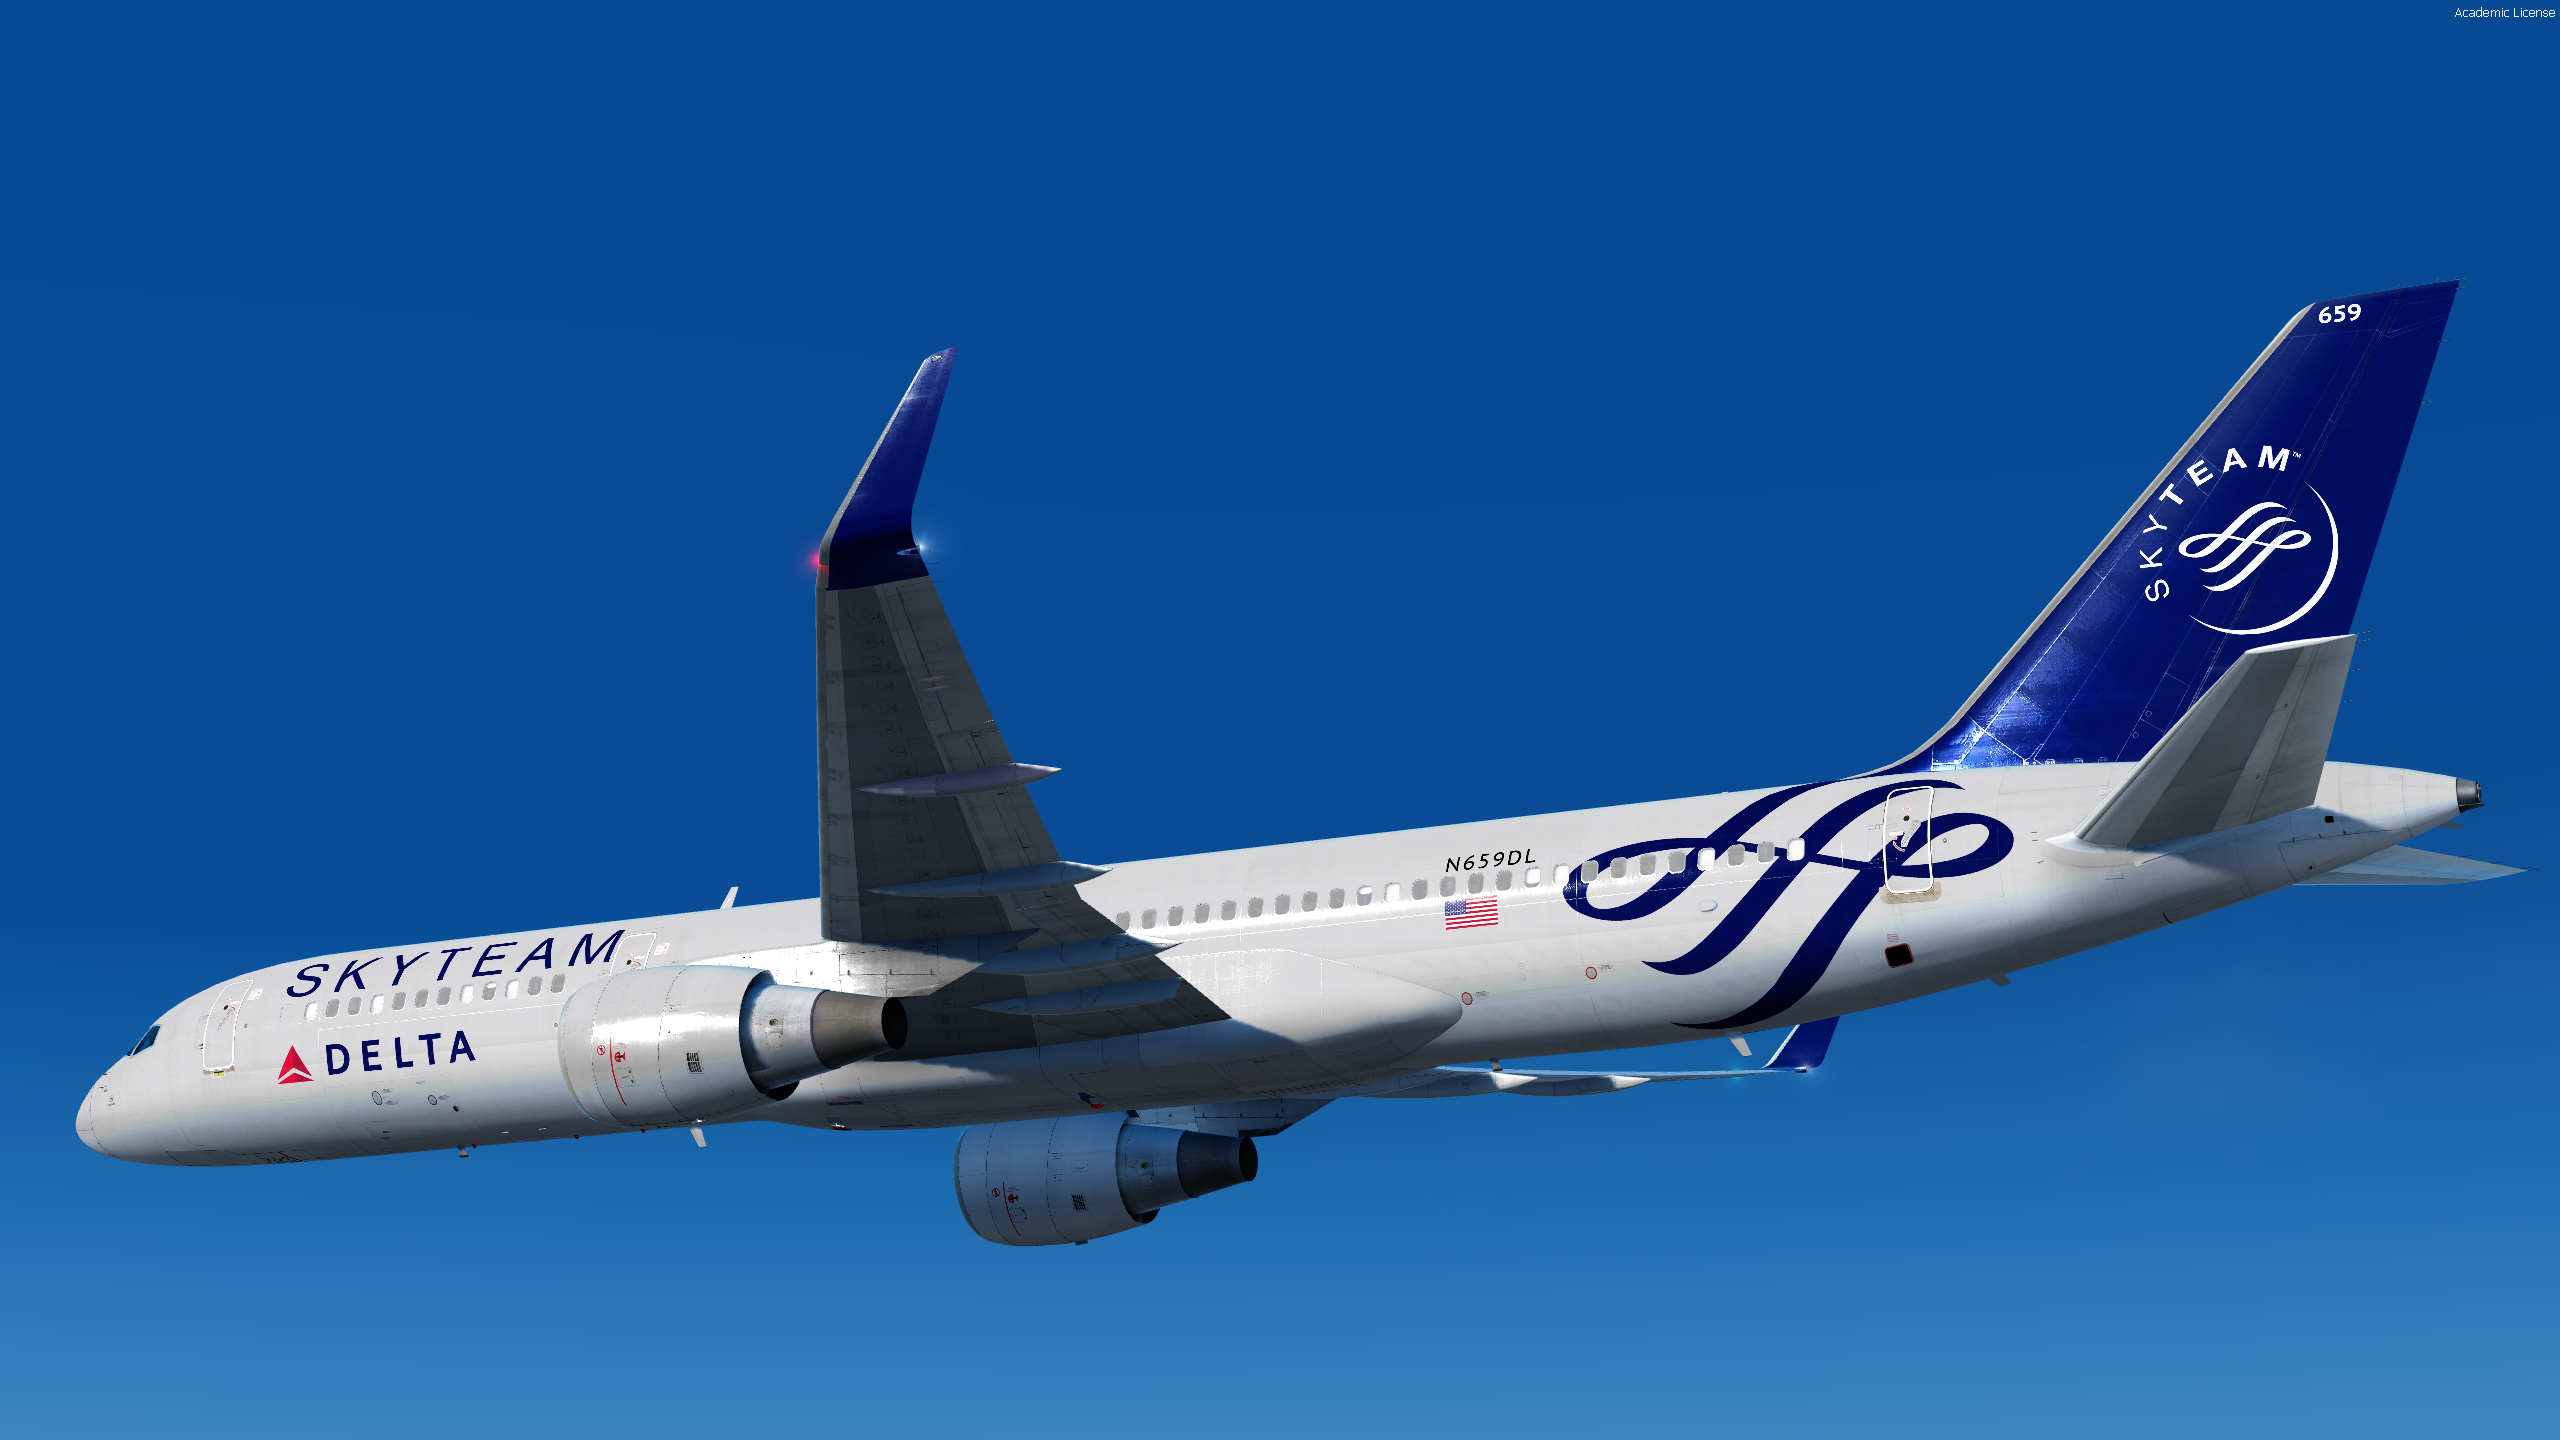 Captain Sim 757 III Updated To V1.3 FSElite